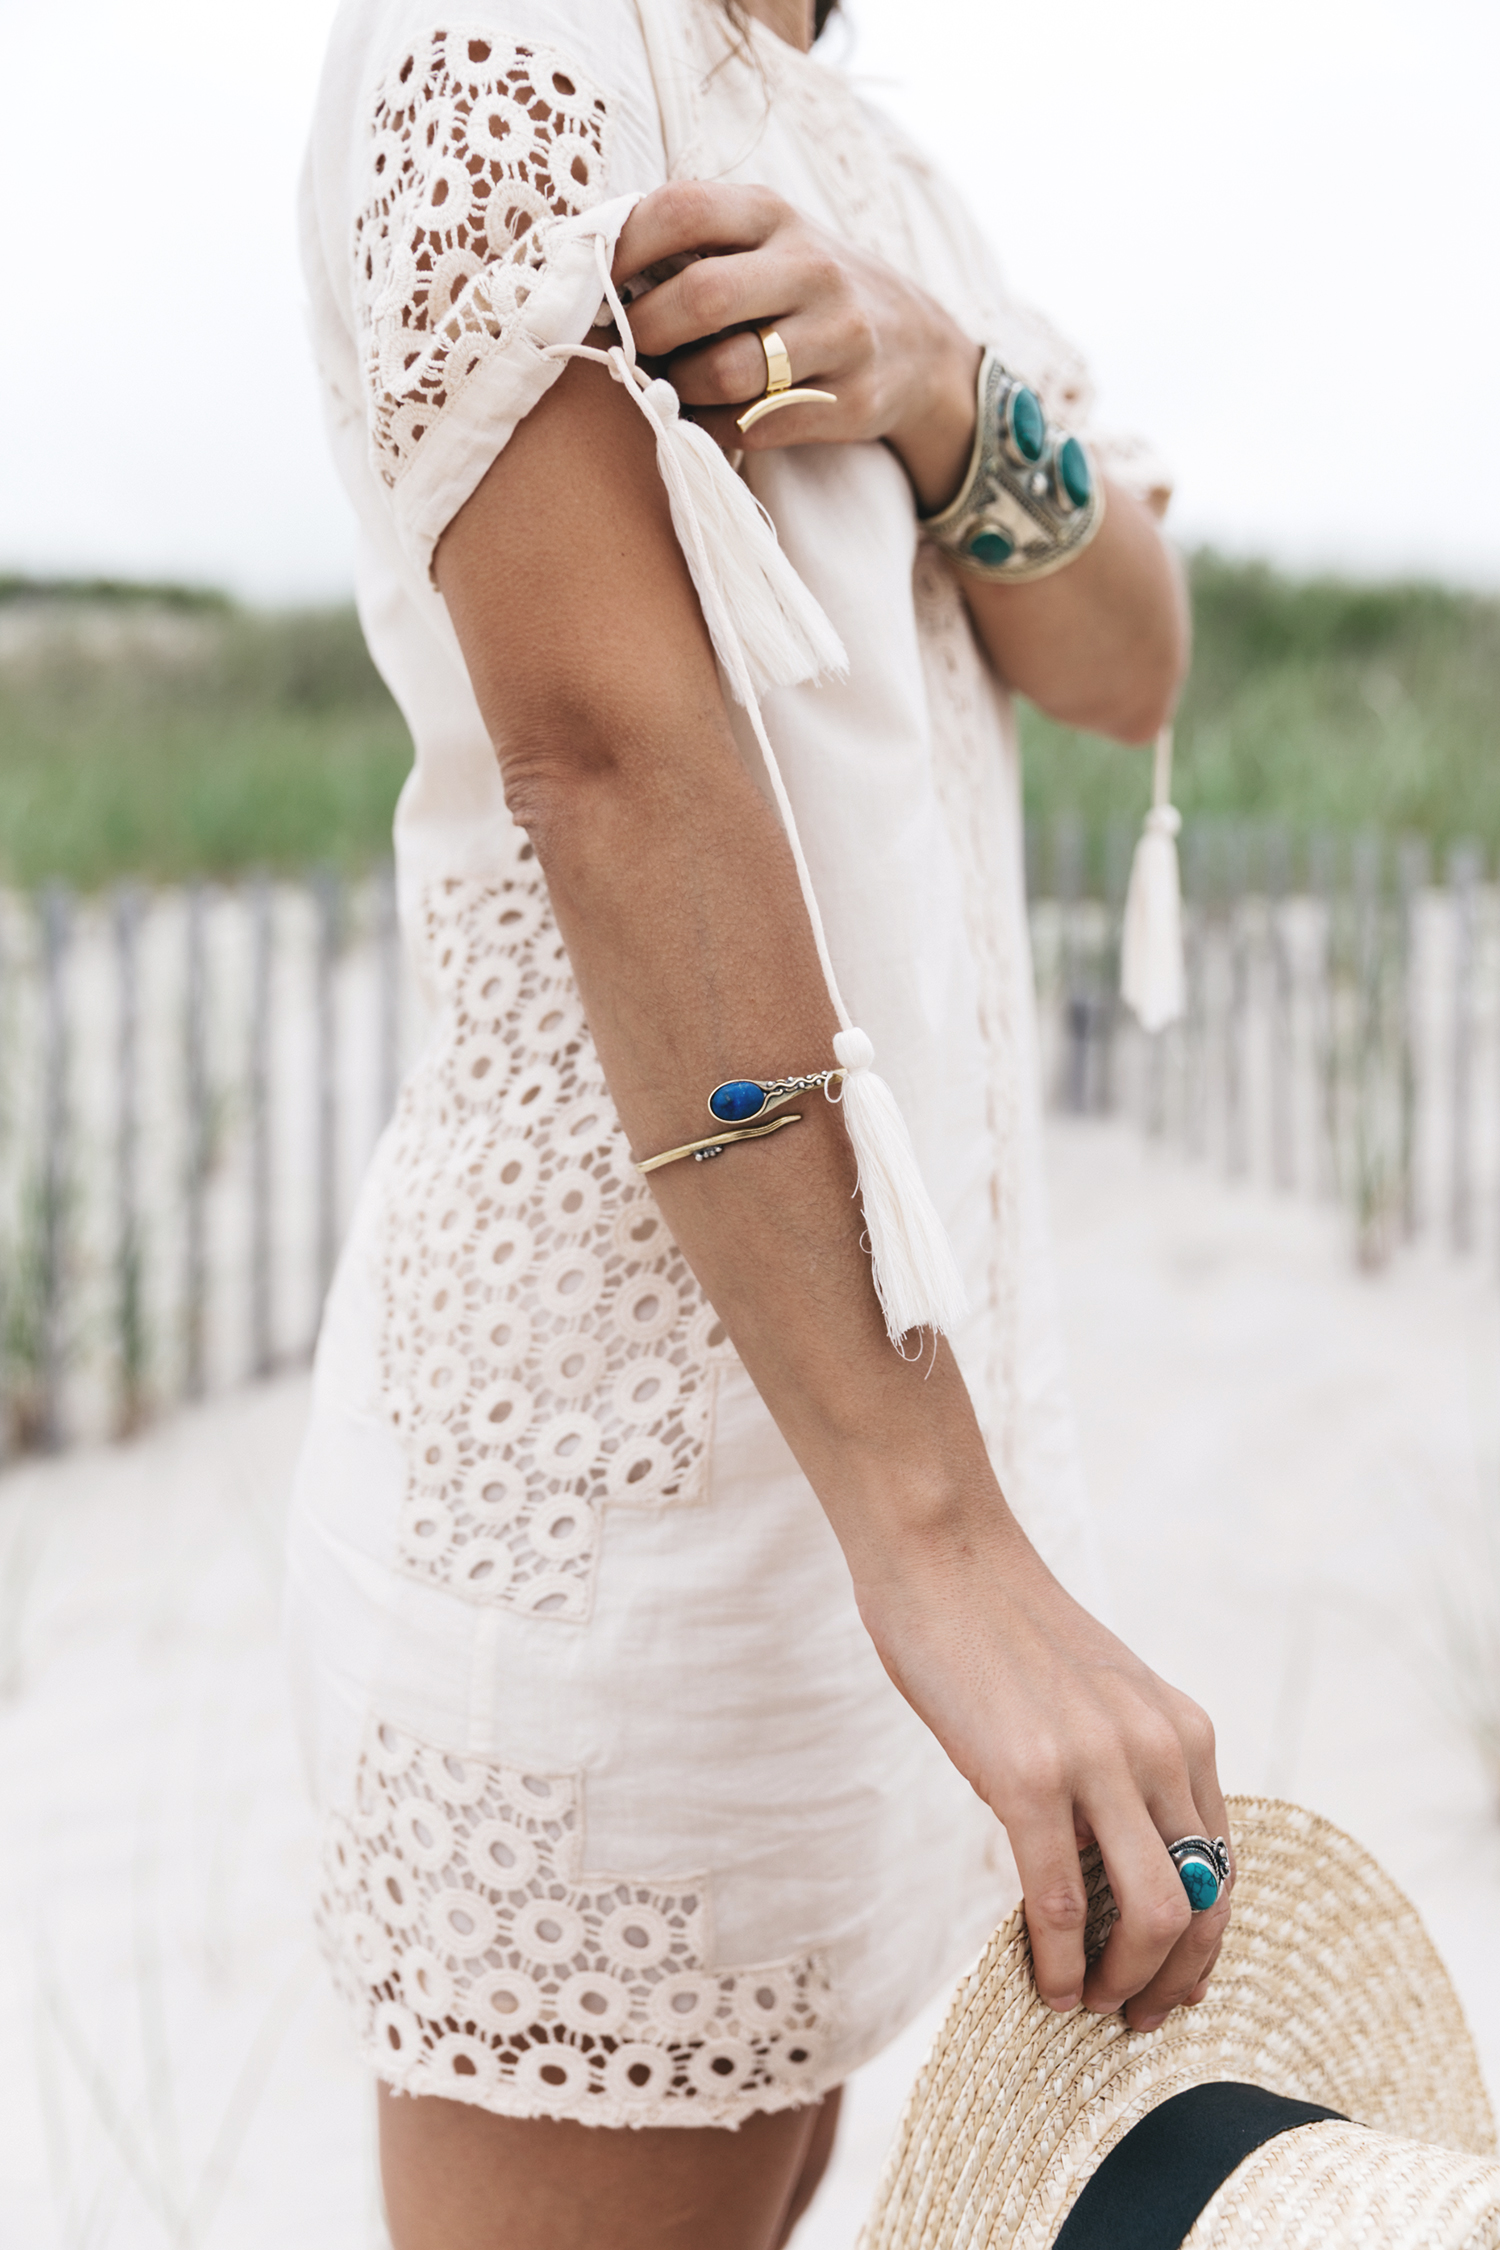 Revolve_in_The_Hamptons-Revolve_Clothing-Collage_Vintage-Cream_Dress-Tularosa-Canotier-15